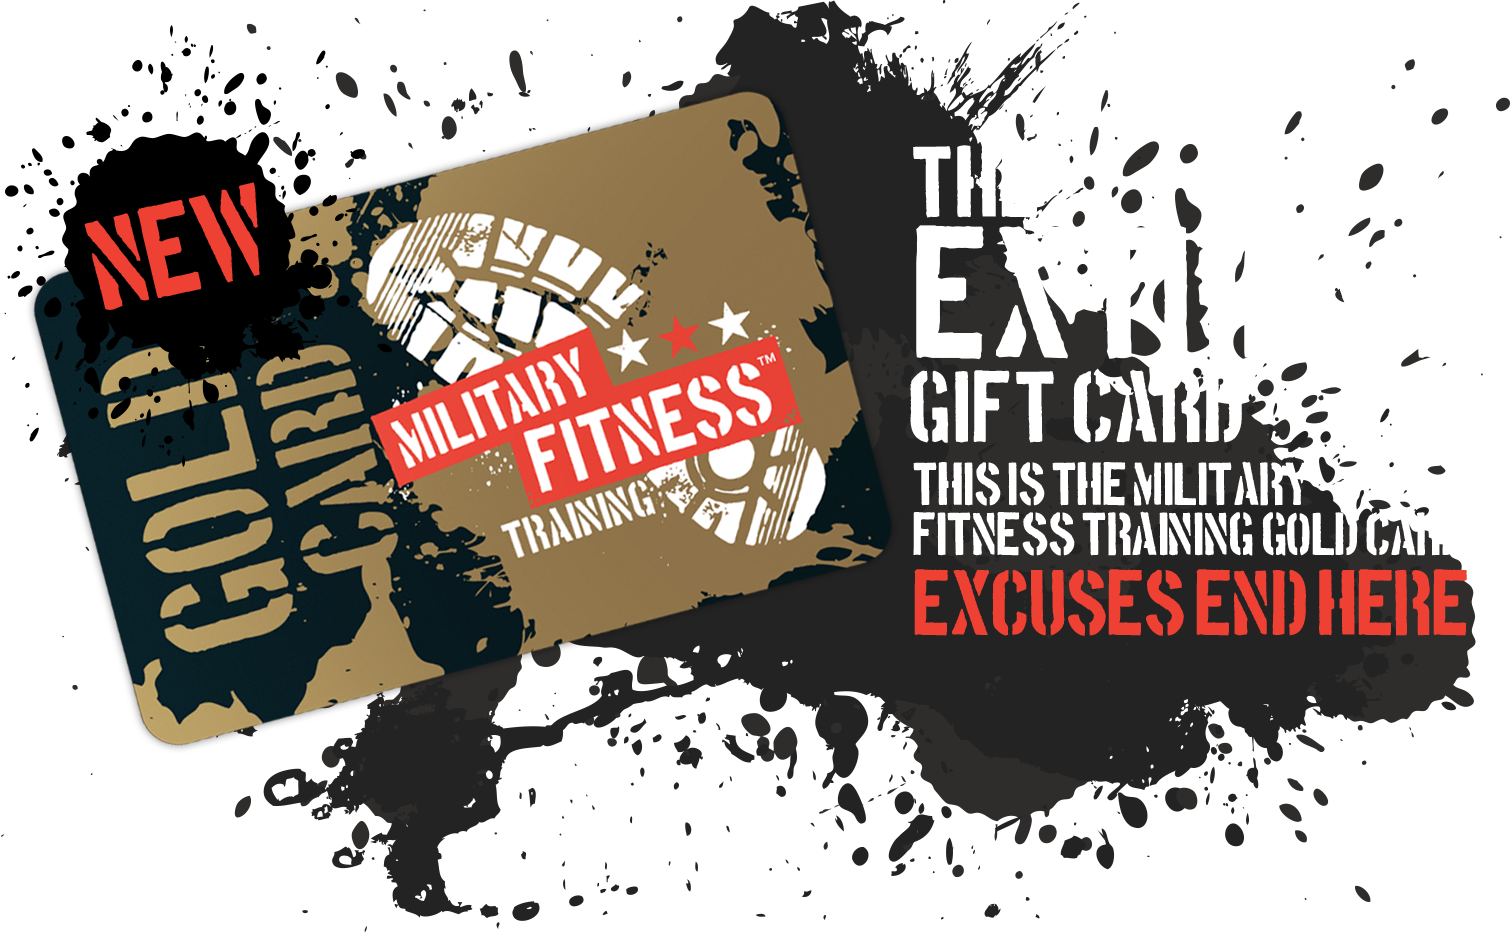 Parking lot clipart privilege. Card military fitness aberdeen